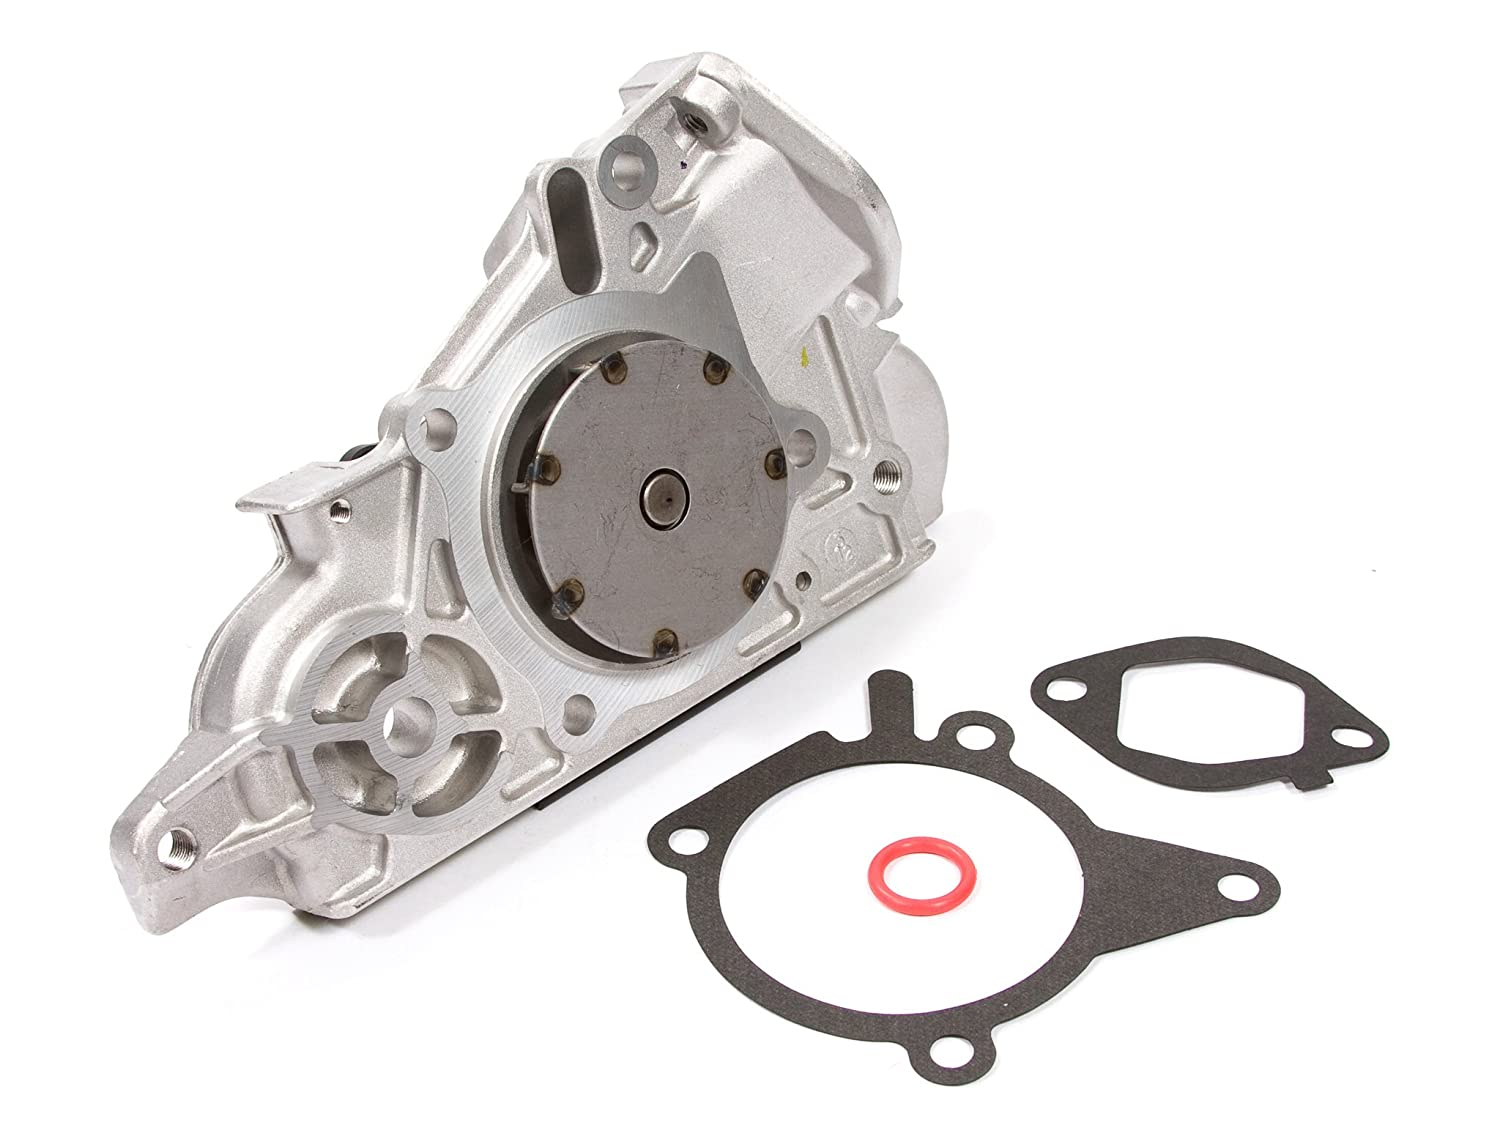 Evergreen TBK179WPT2 Fits 94-05 Mazda Miata MX-3 Protege Kia Sephia 1.6 1.8 DOHC 16V B6 BP Timing Belt Water Pump Kit